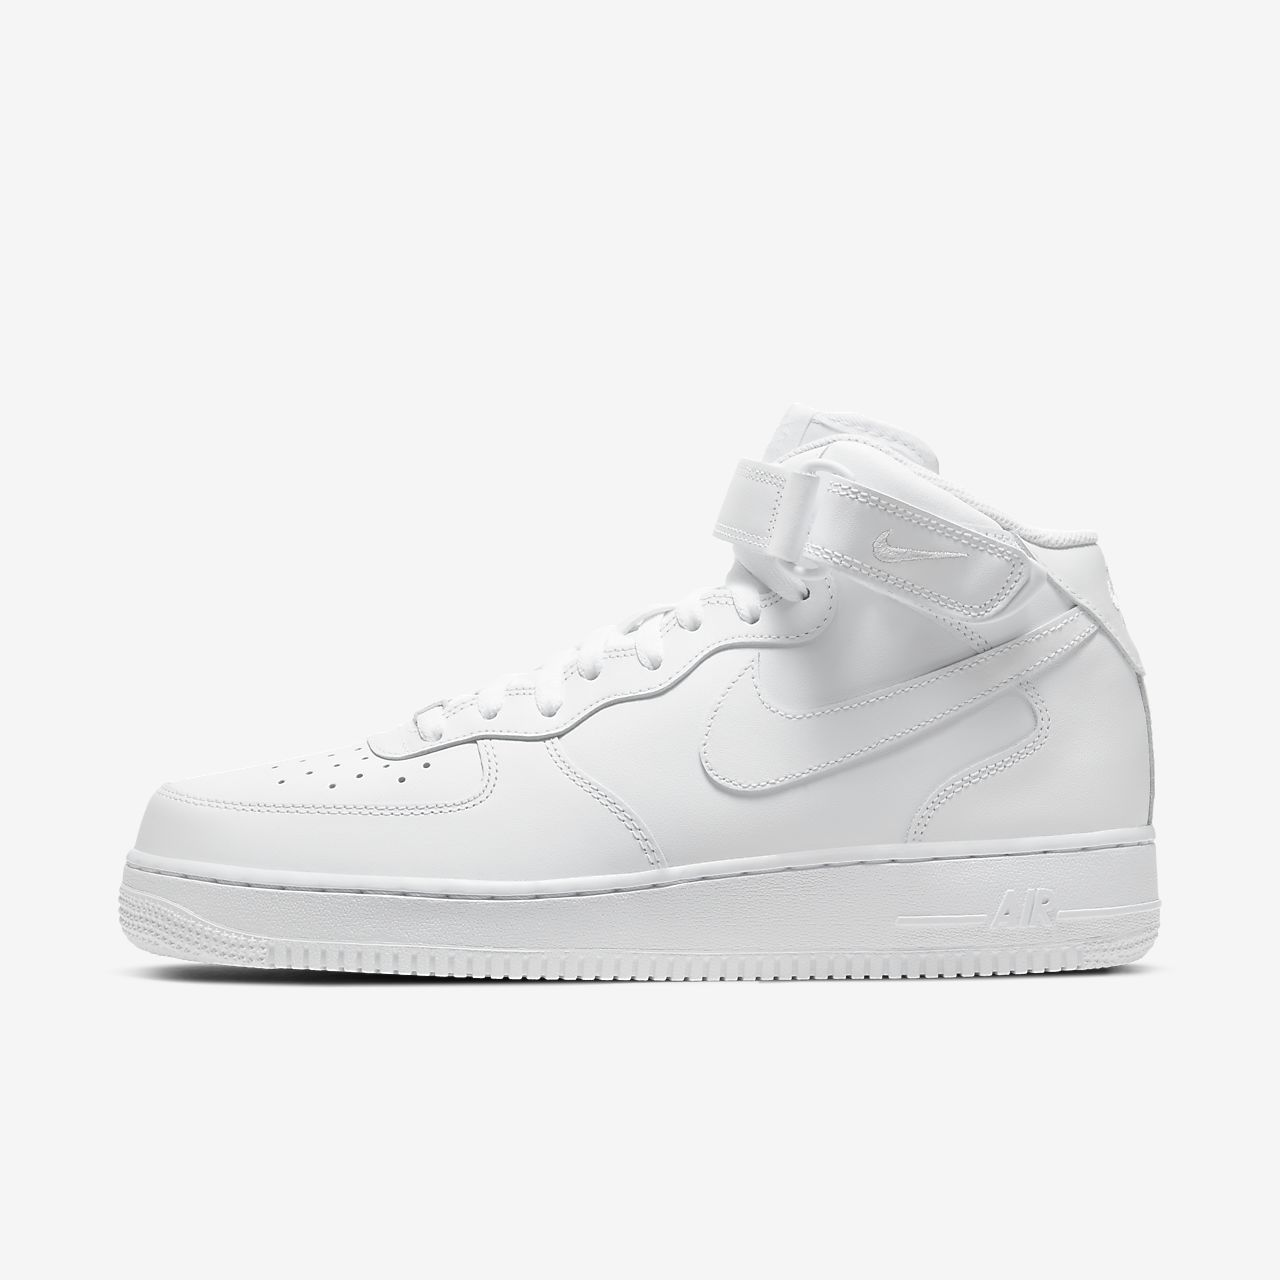 super popular 50a1d b5c2a ... Calzado para hombre Nike Air Force 1 Mid  07